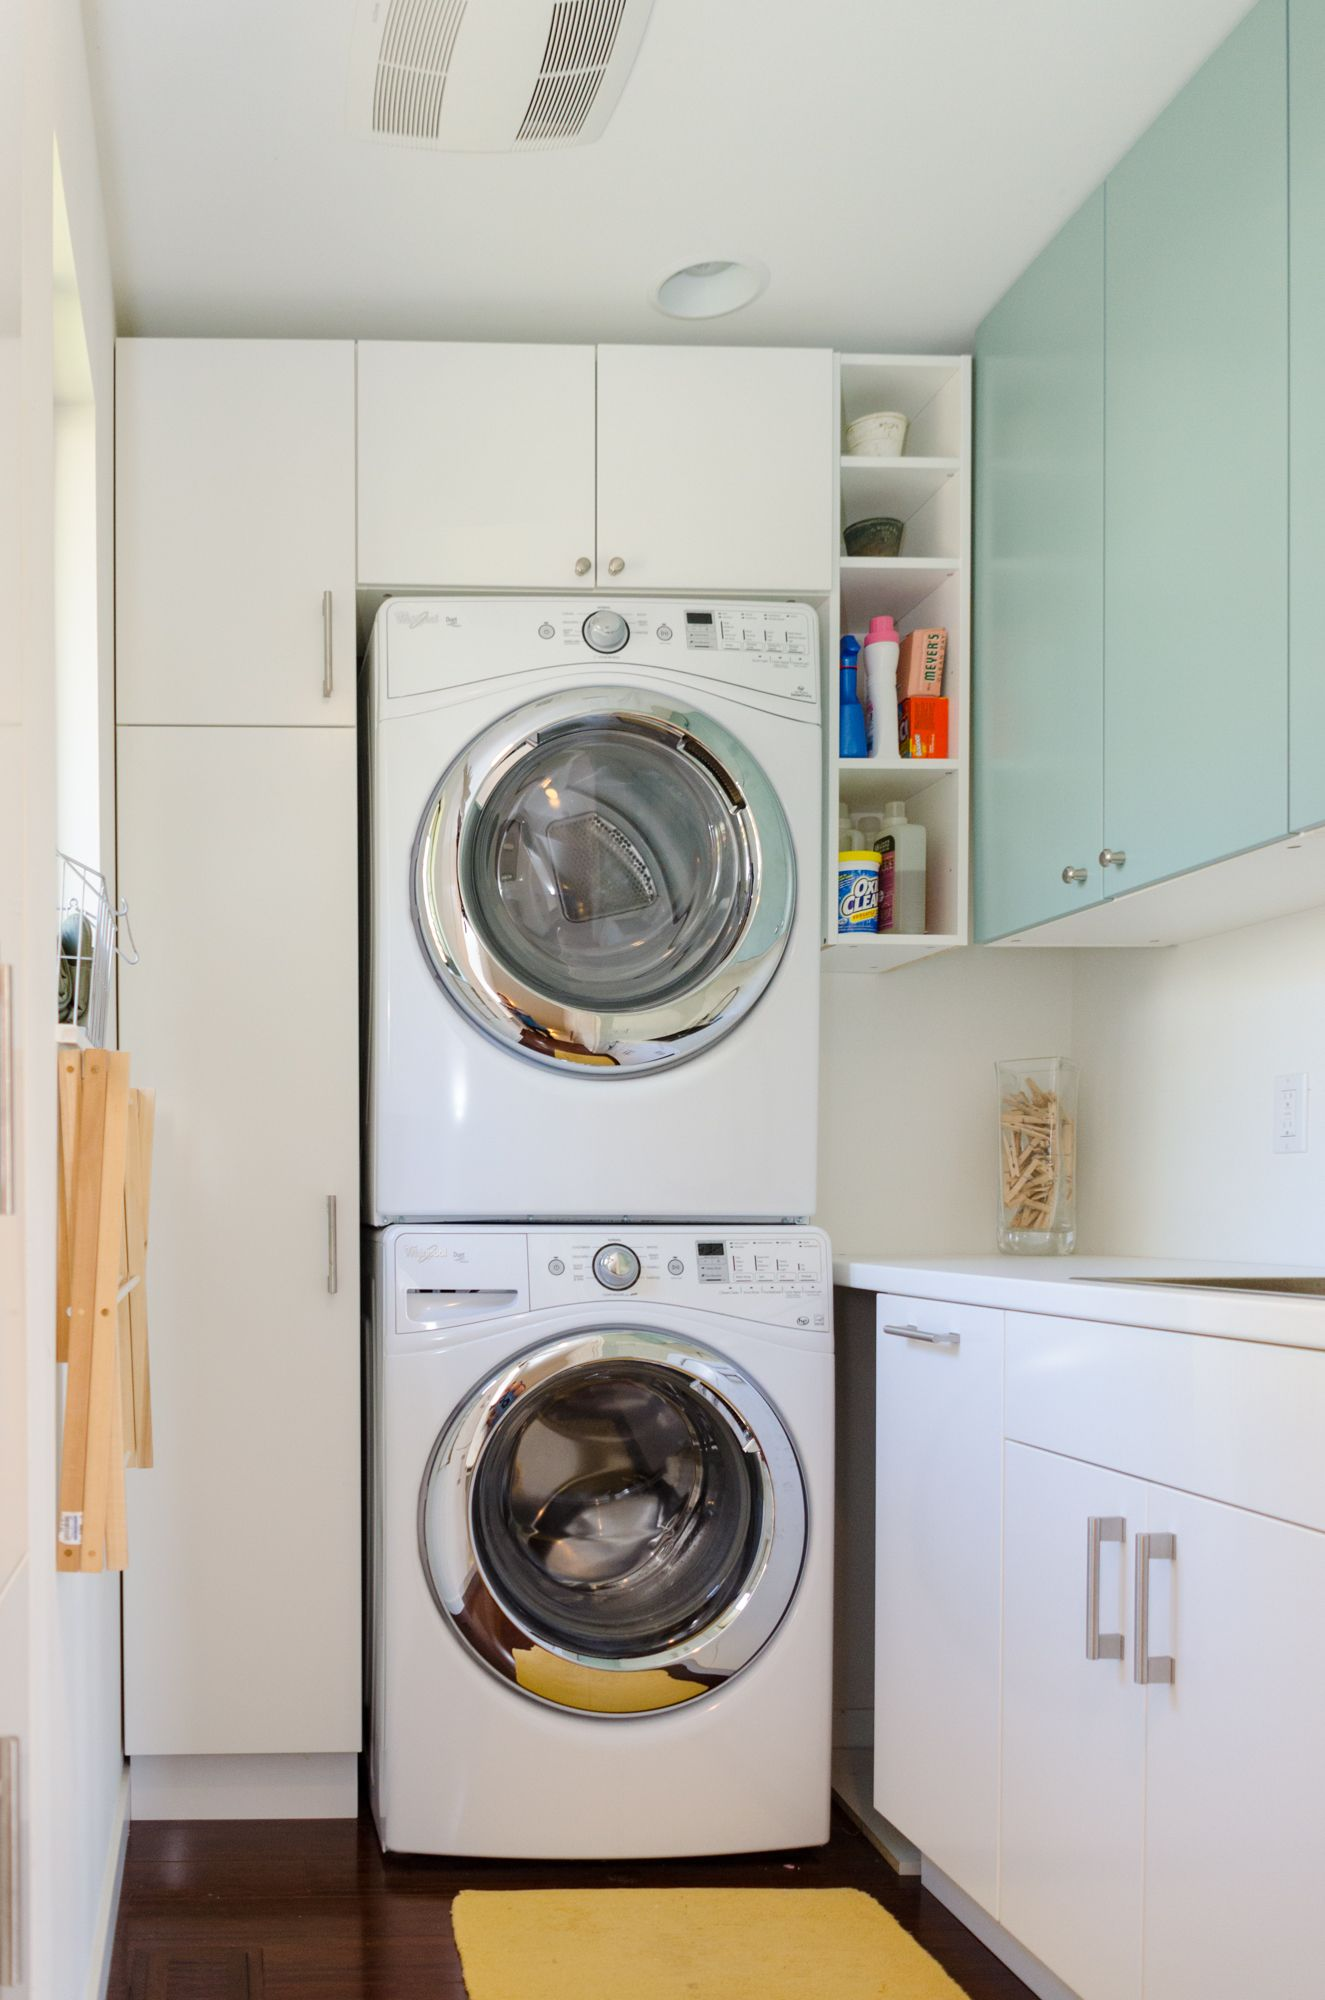 Ikea Pax Waschmaschine Ikea Pax Laundry Hacks Google Search Laundry Room In